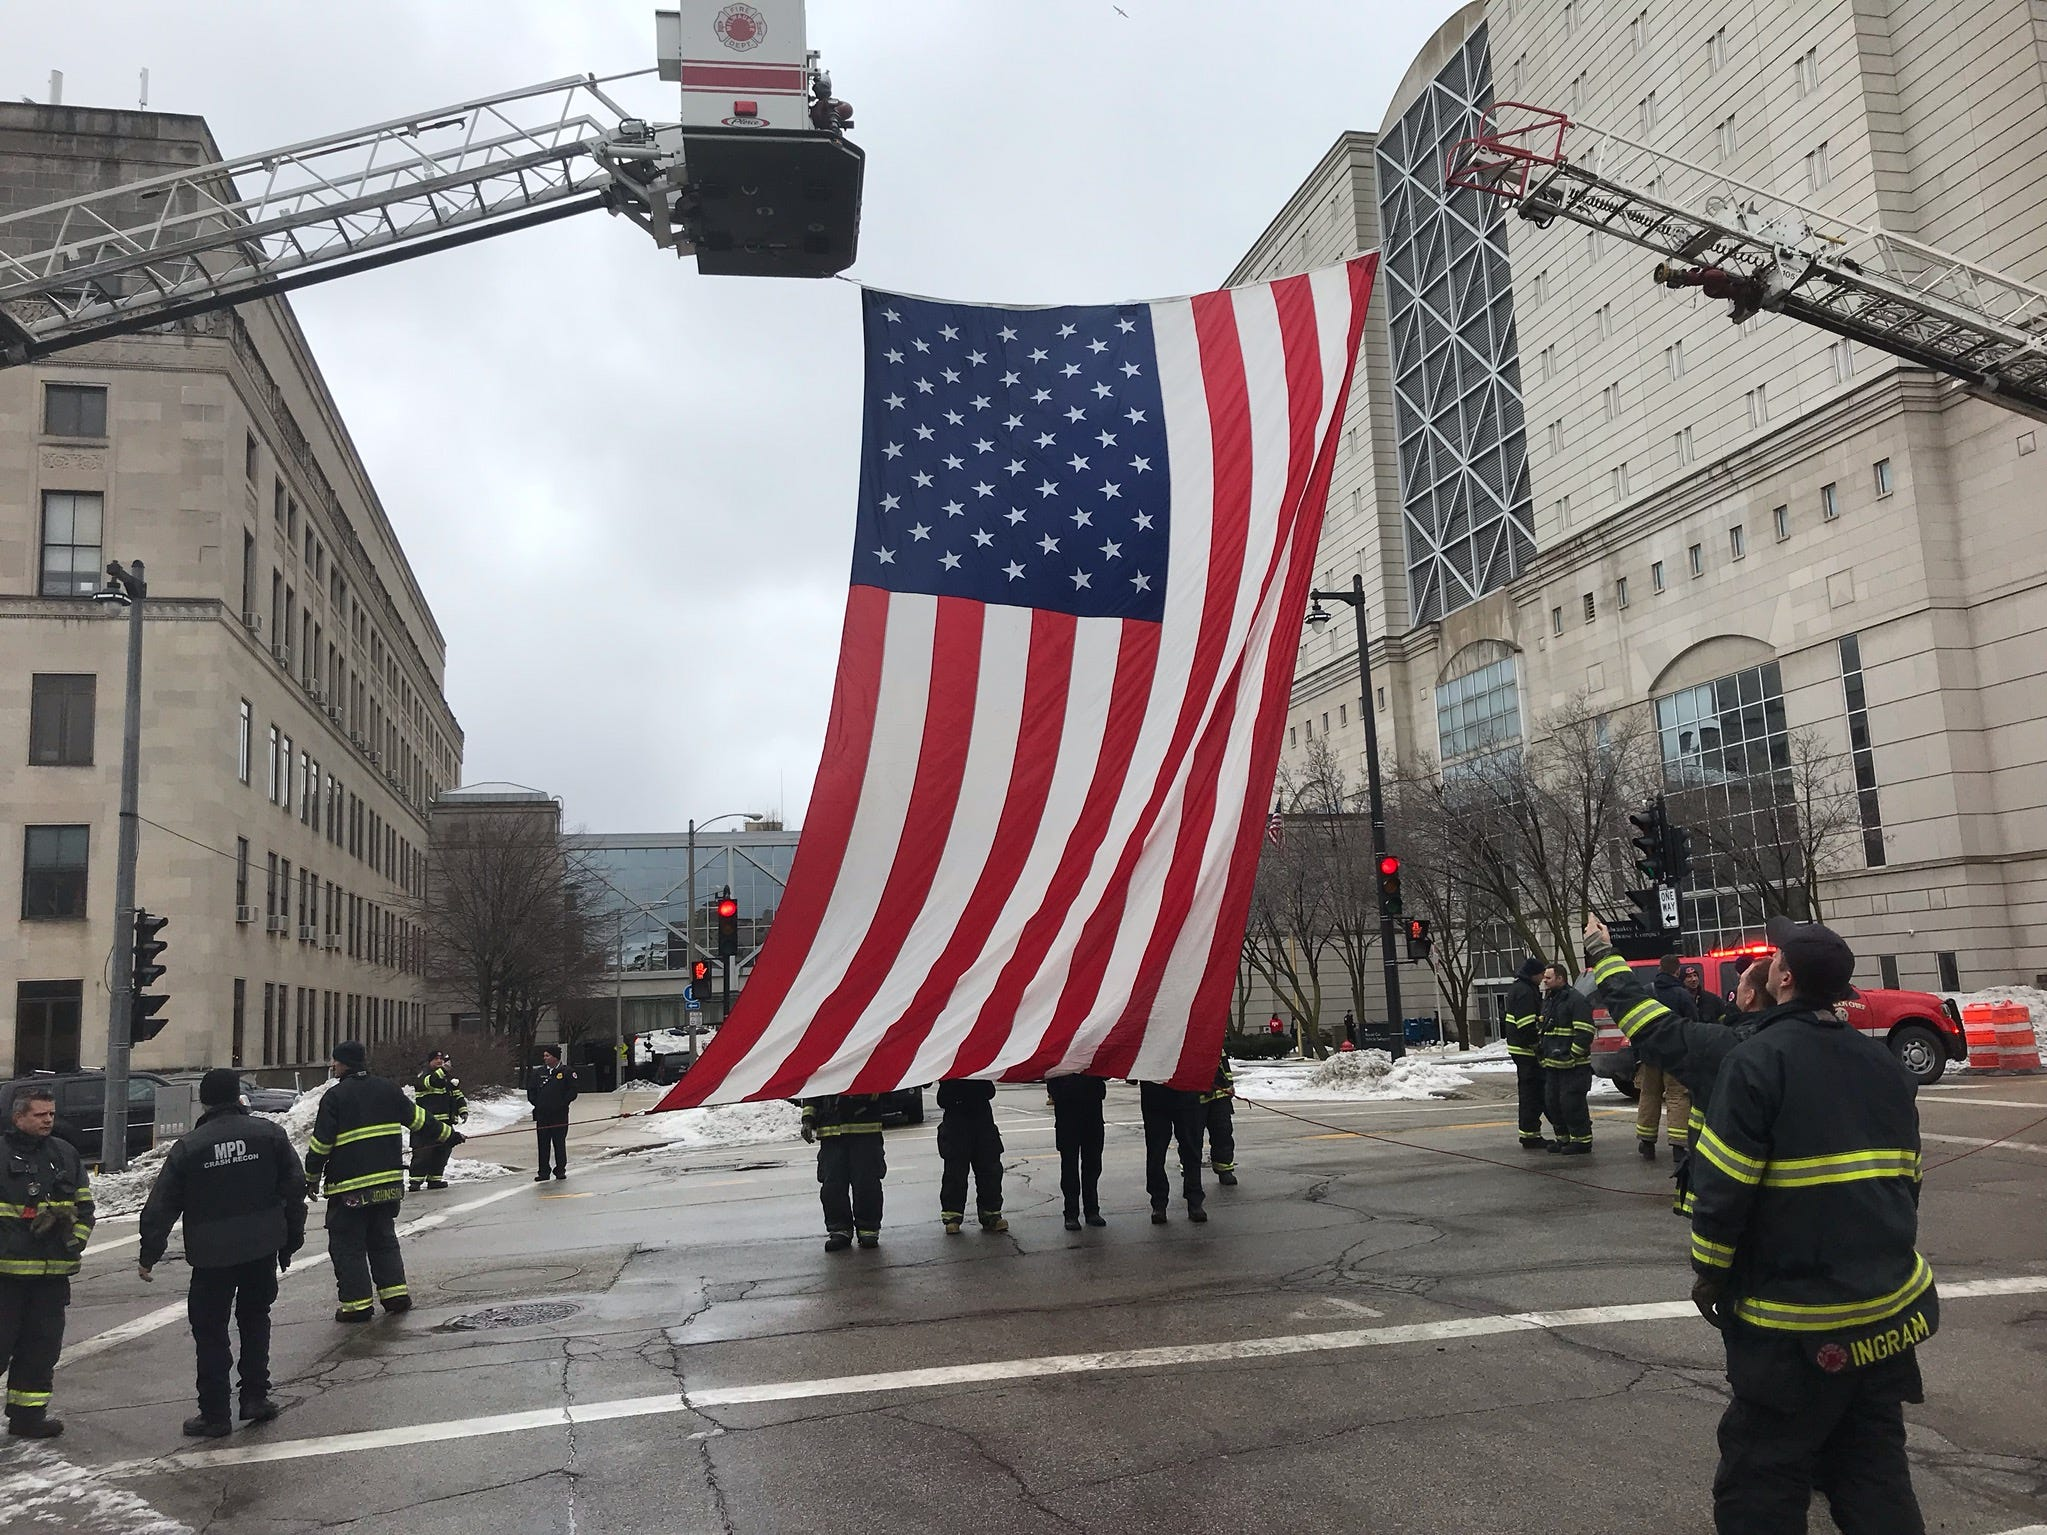 The Milwaukee Fire Department raises a flag at the intersection of 9th and State streets.